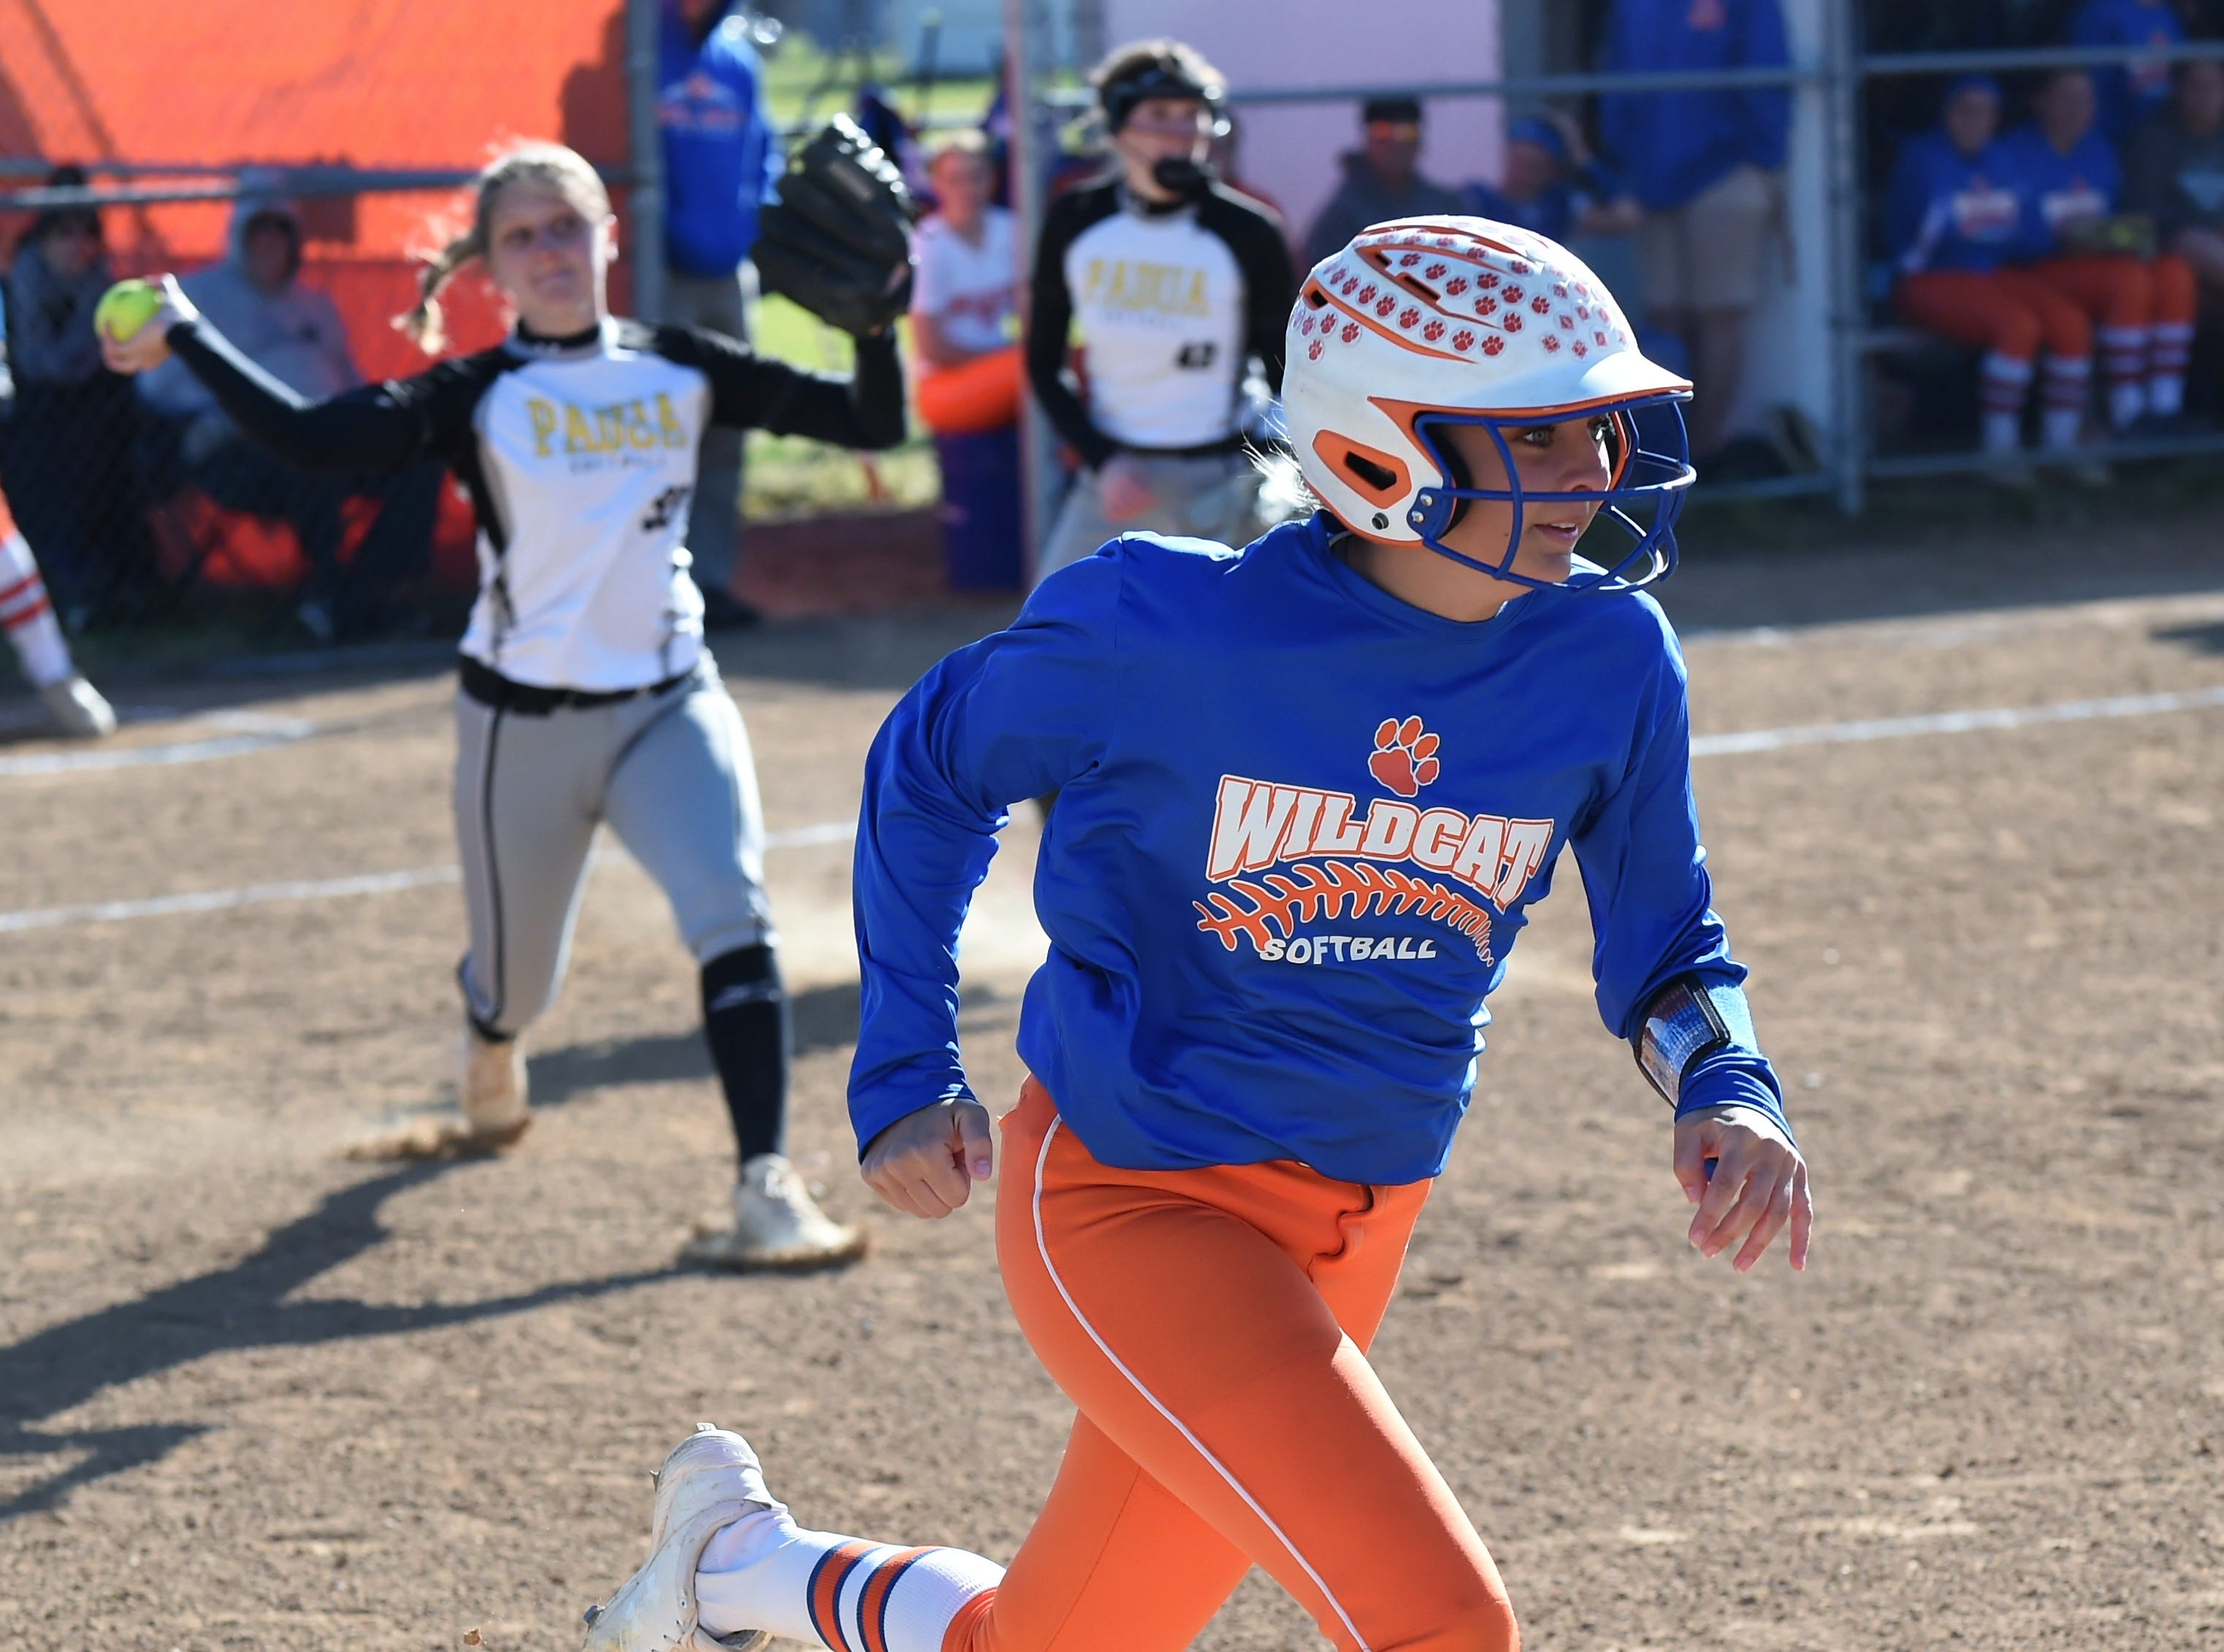 A Delmar runner sprints down the first base line after a hit on Monday, April 15, 2019. The Wildcats defeated Padua Academy, 6-2.